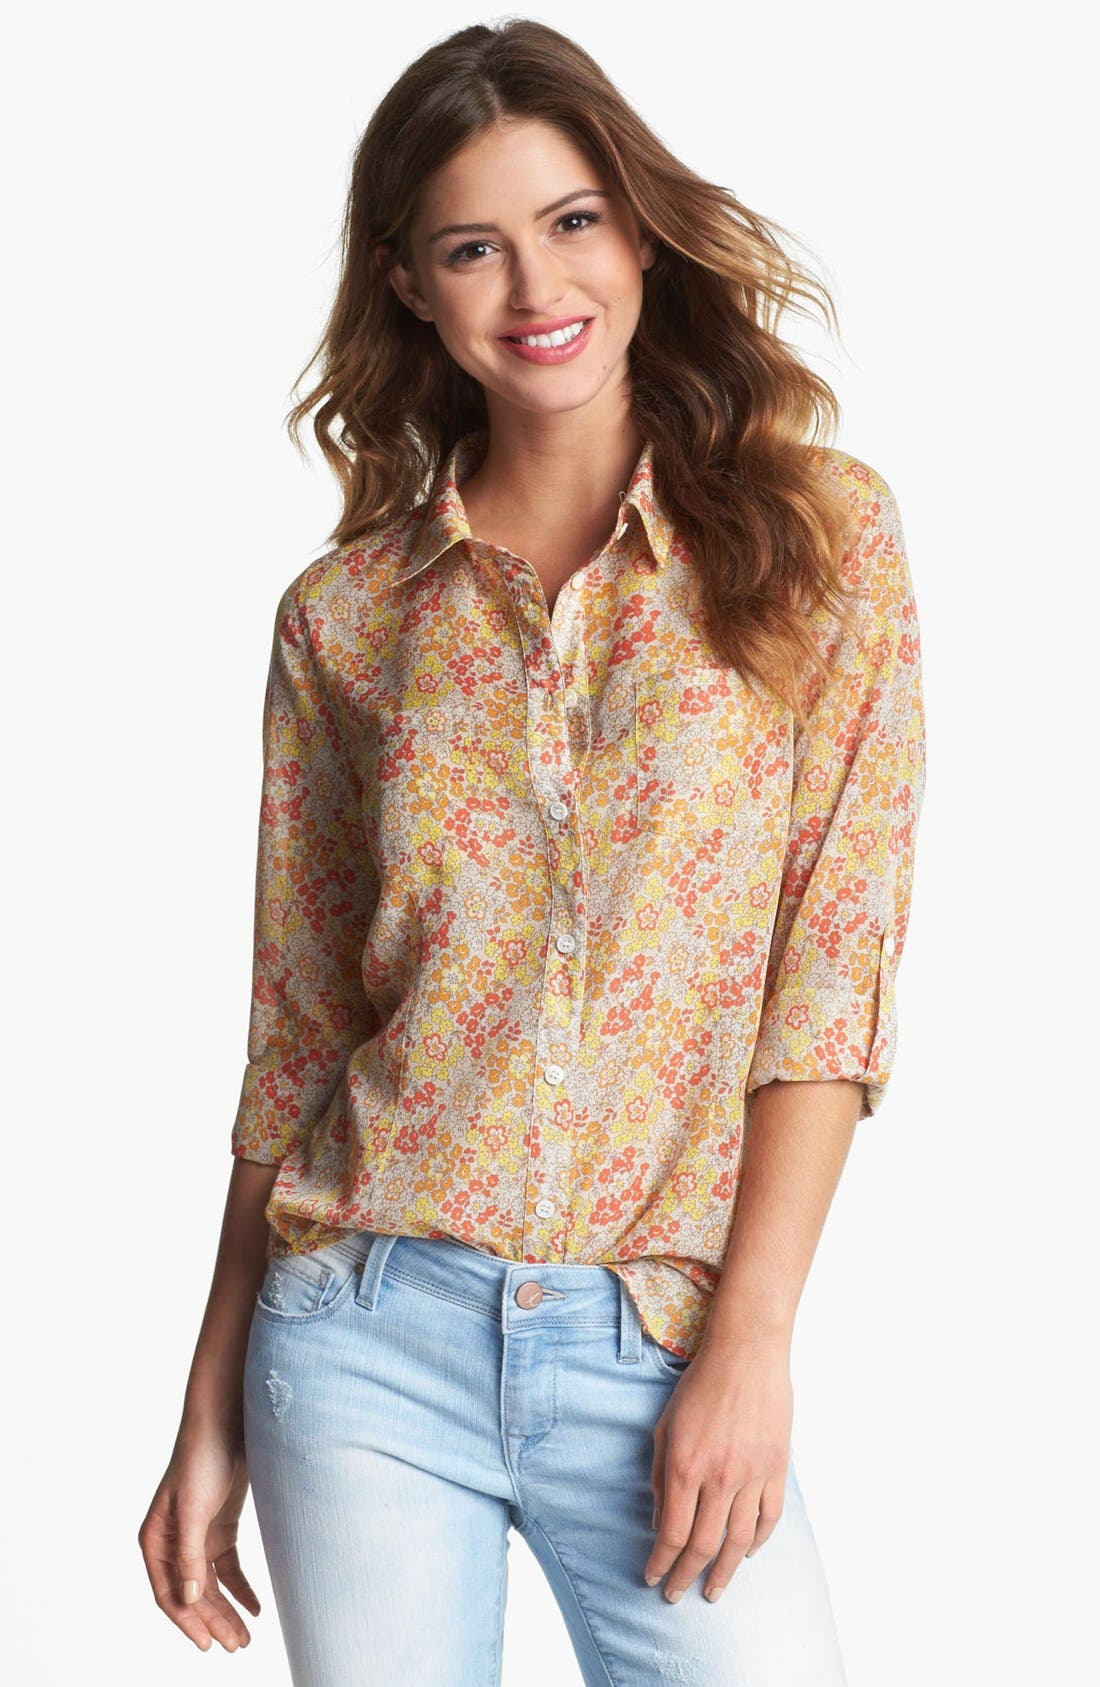 Alternate Image 1 Selected - Two by Vince Camuto Print Utility Shirt (Petite)